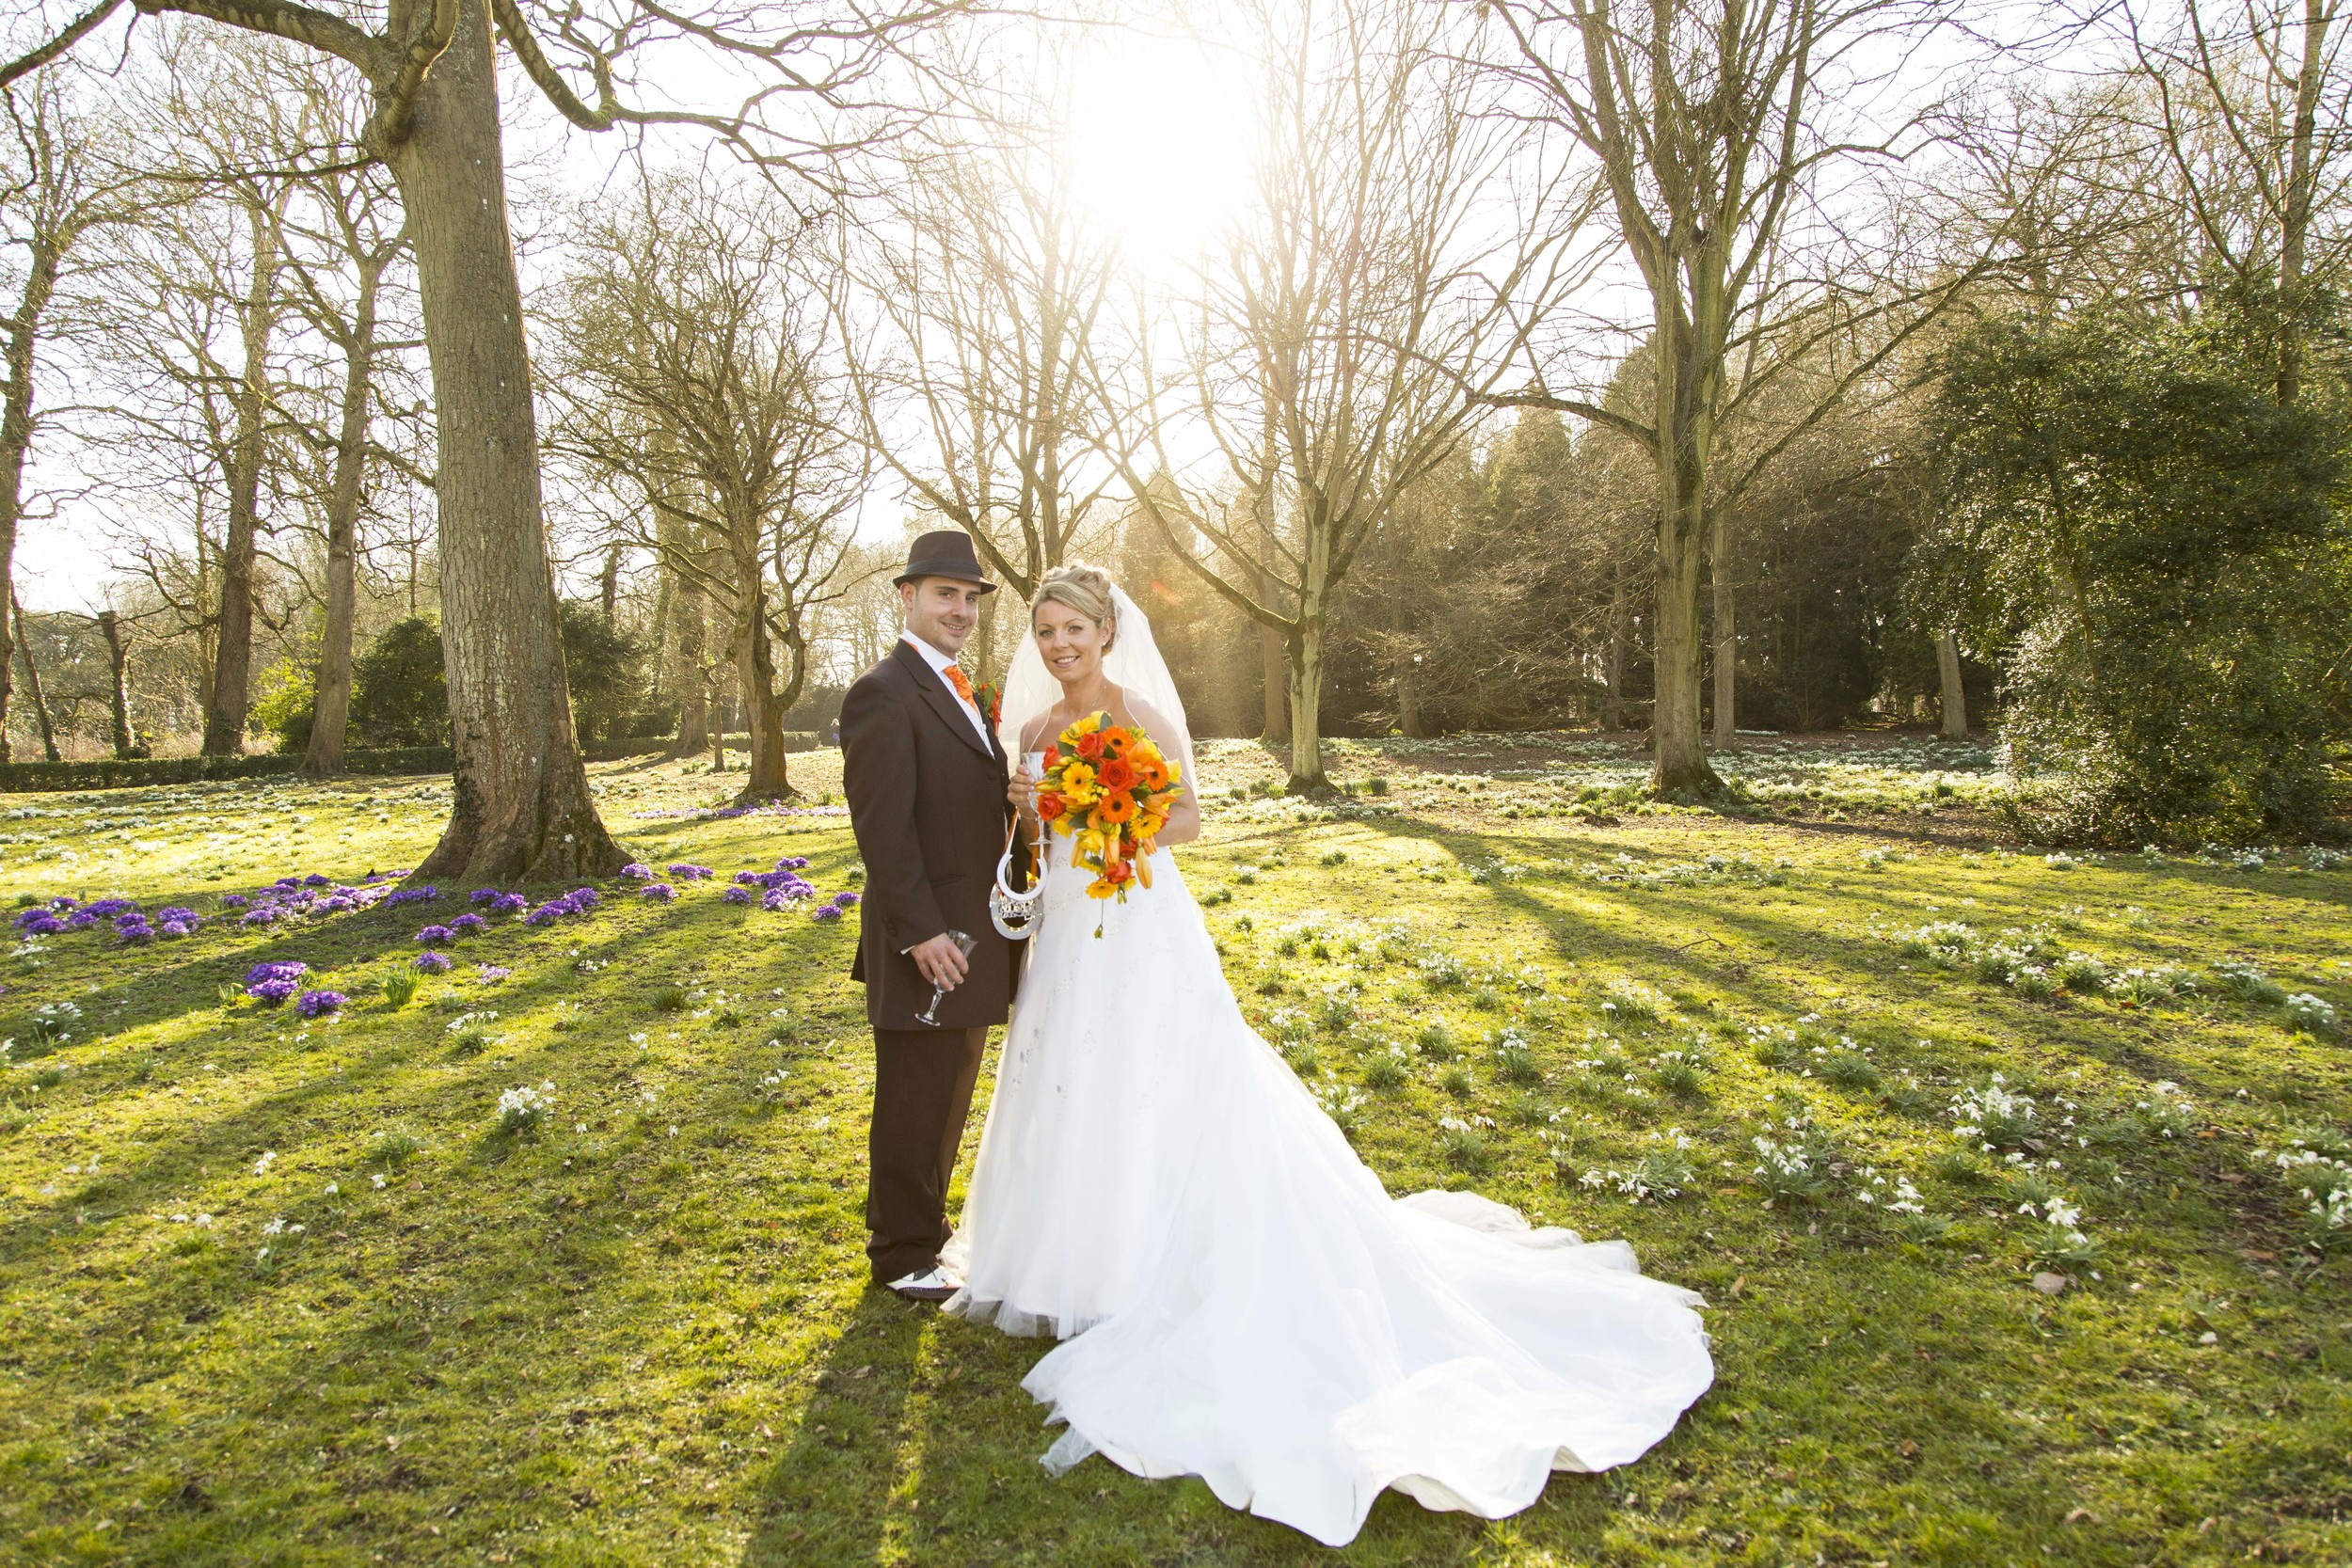 My first wedding of the year for a couple who were so sweet and welcoming and who I would now call friends the lovely Katie & Carl! They had their wedding at Lydiard Church followed by photos in the beautiful grounds and then onto The Marriott hotel in Swindon for their reception. The weather for 7th March was amazing!!! It made for shots like this one. Thank you for starting my 2015 off with a great wedding!